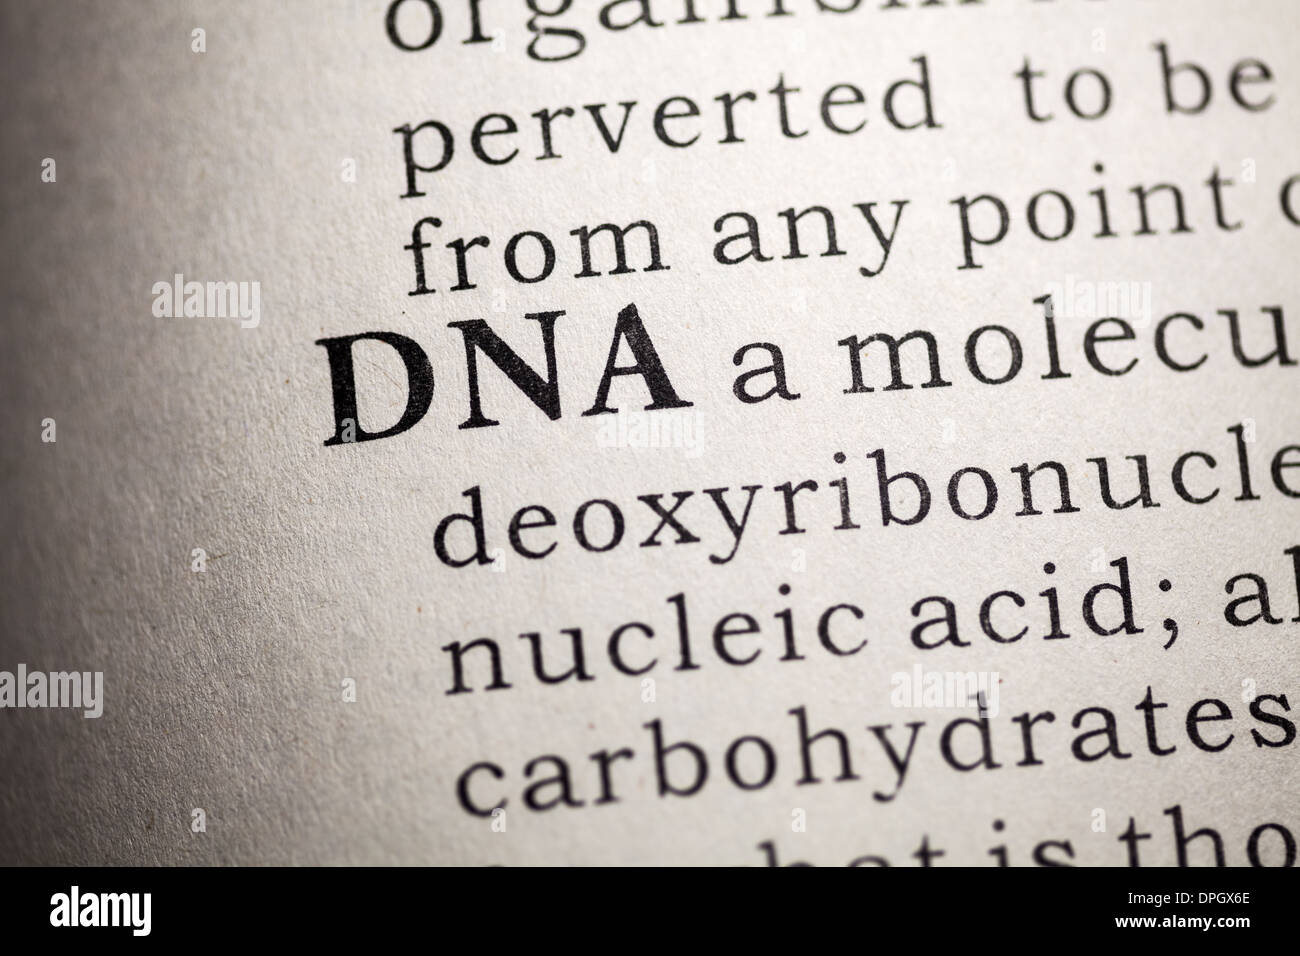 Fake Dictionary, Dictionary definition of DNA. - Stock Image